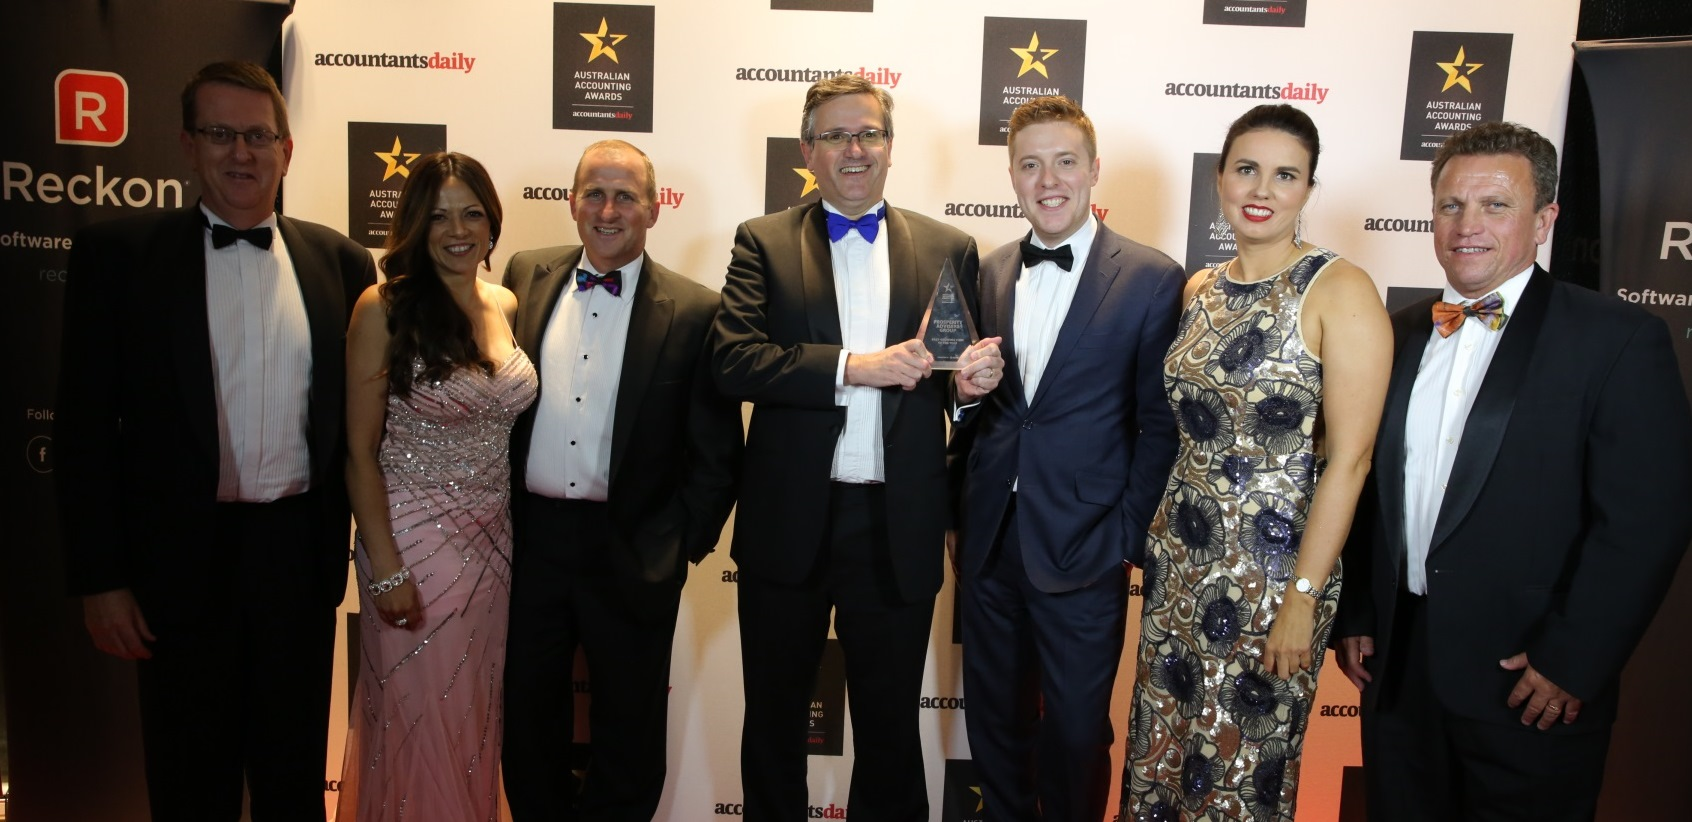 Prosperity feature in Australian Accounting Awards Image